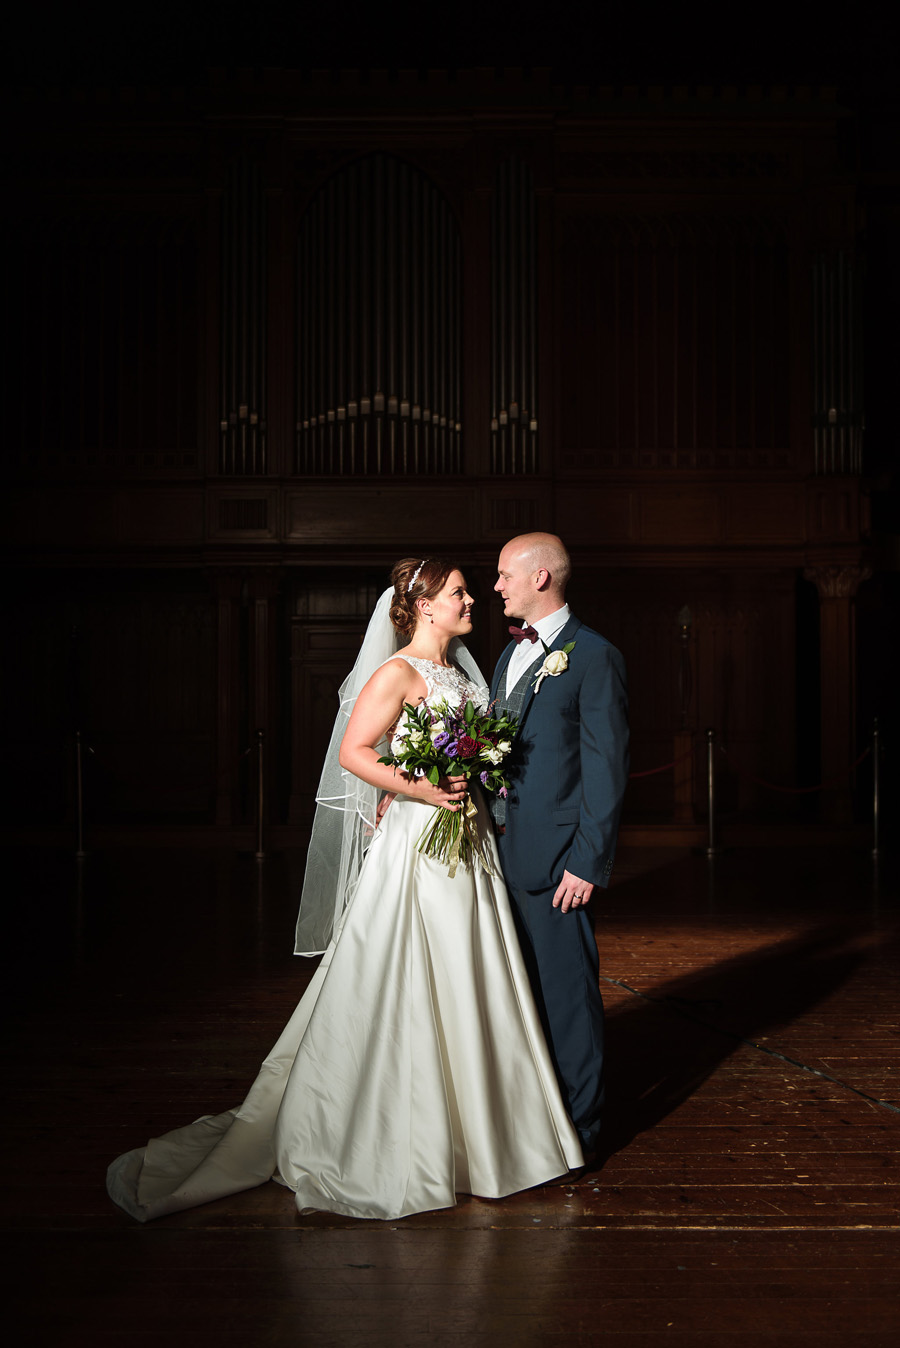 Stunning real wedding at Salomons Estate, images by Penny Young Photography (24)